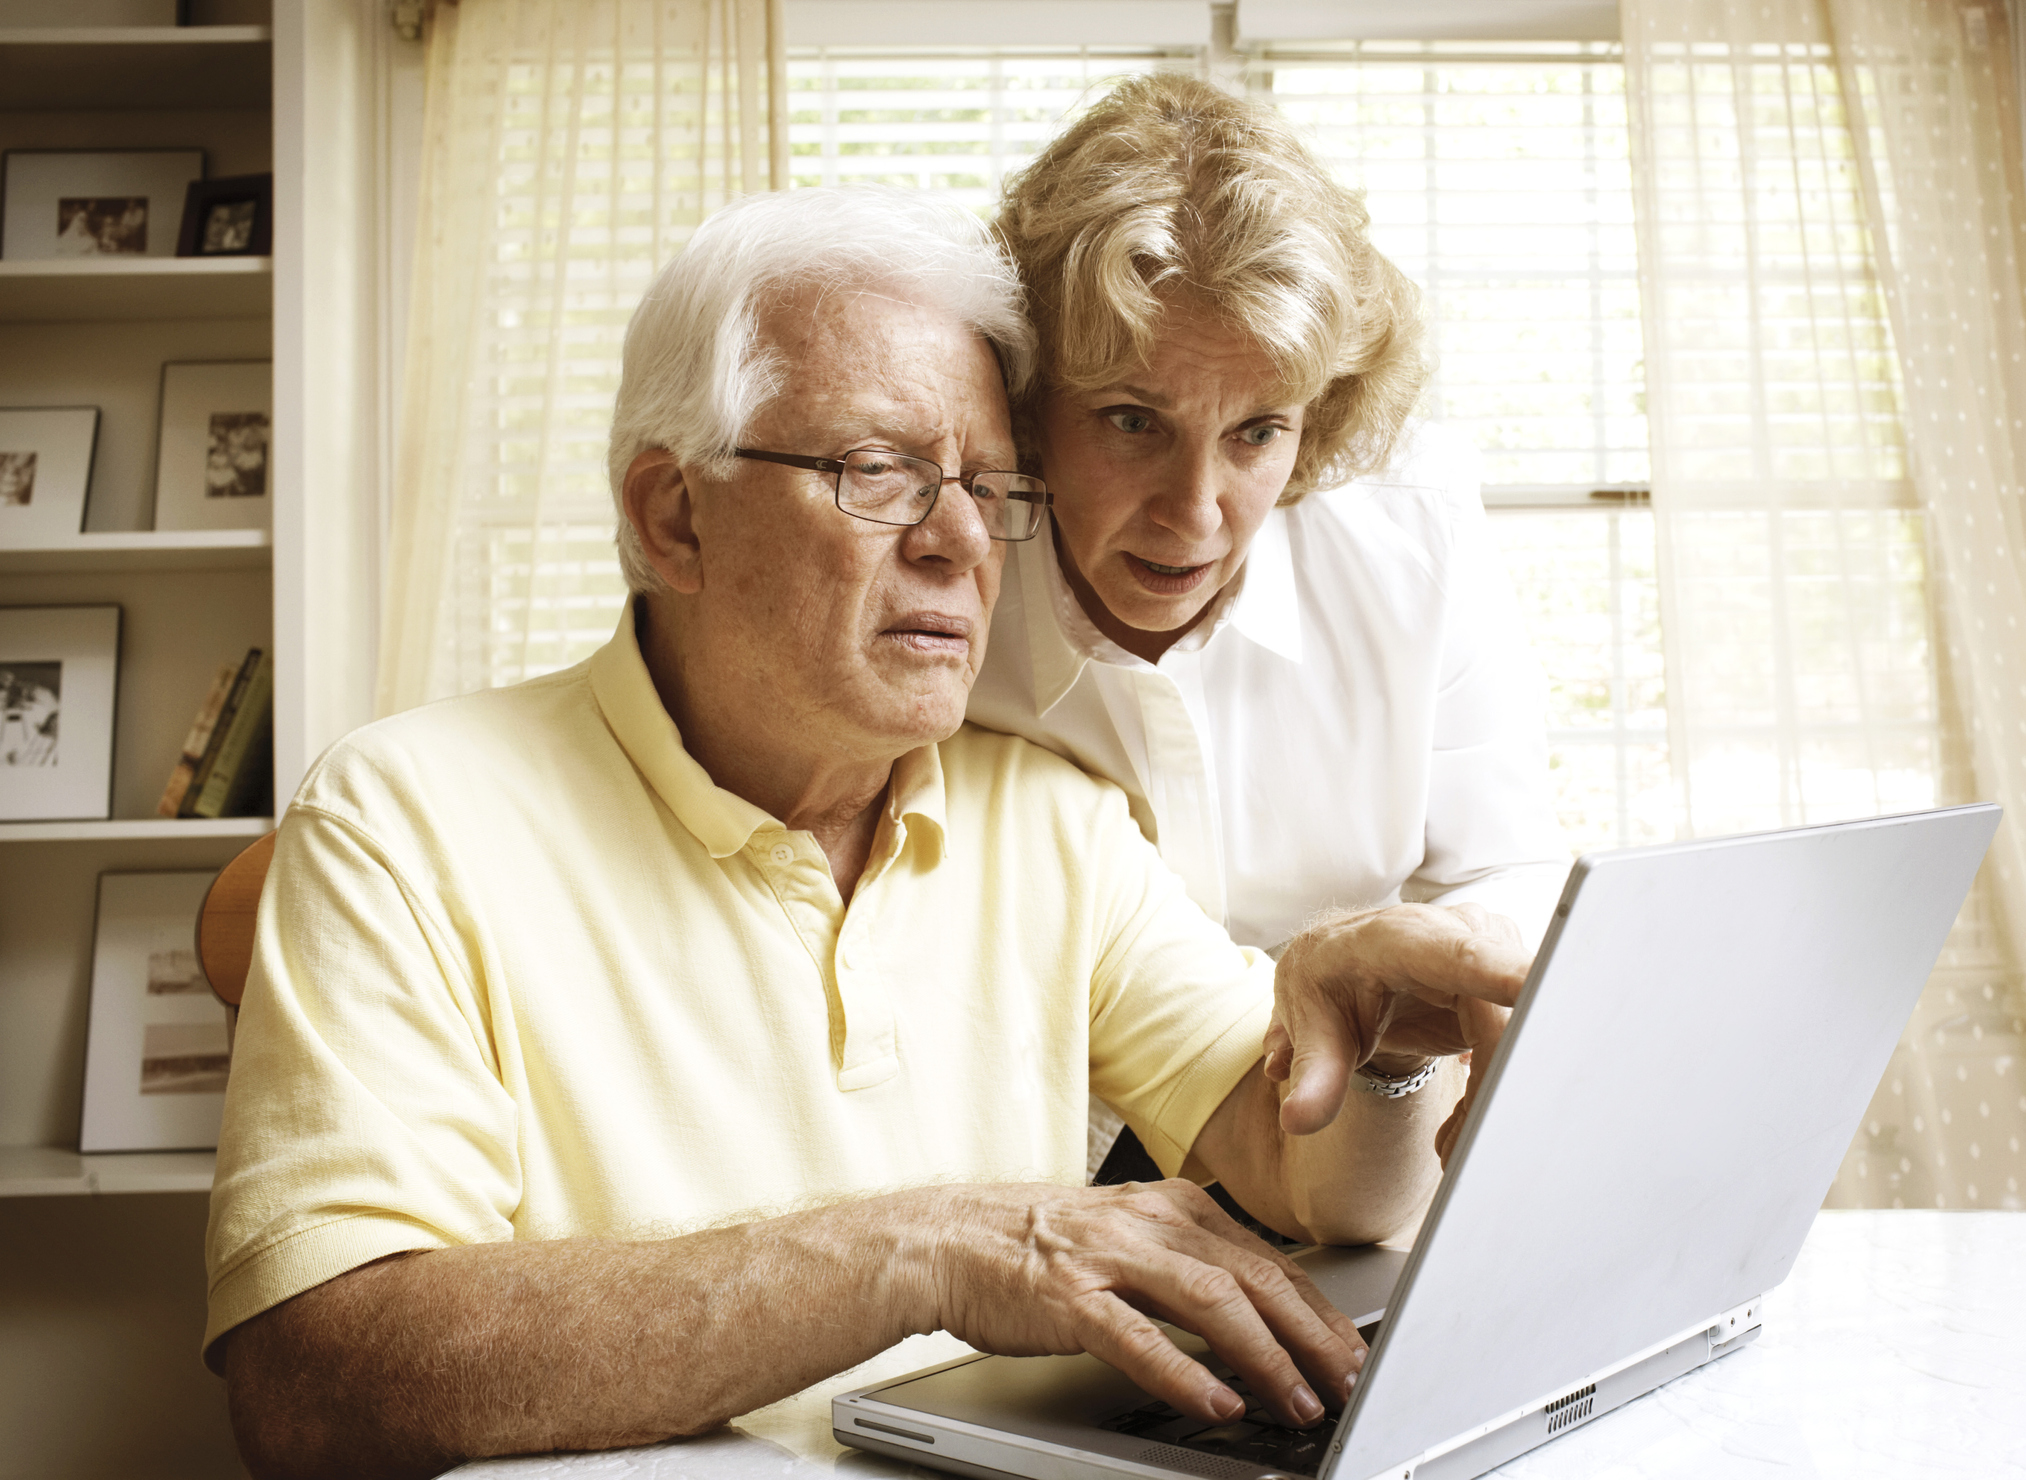 older couple practicing social distancing by using their computer to research financial advisors